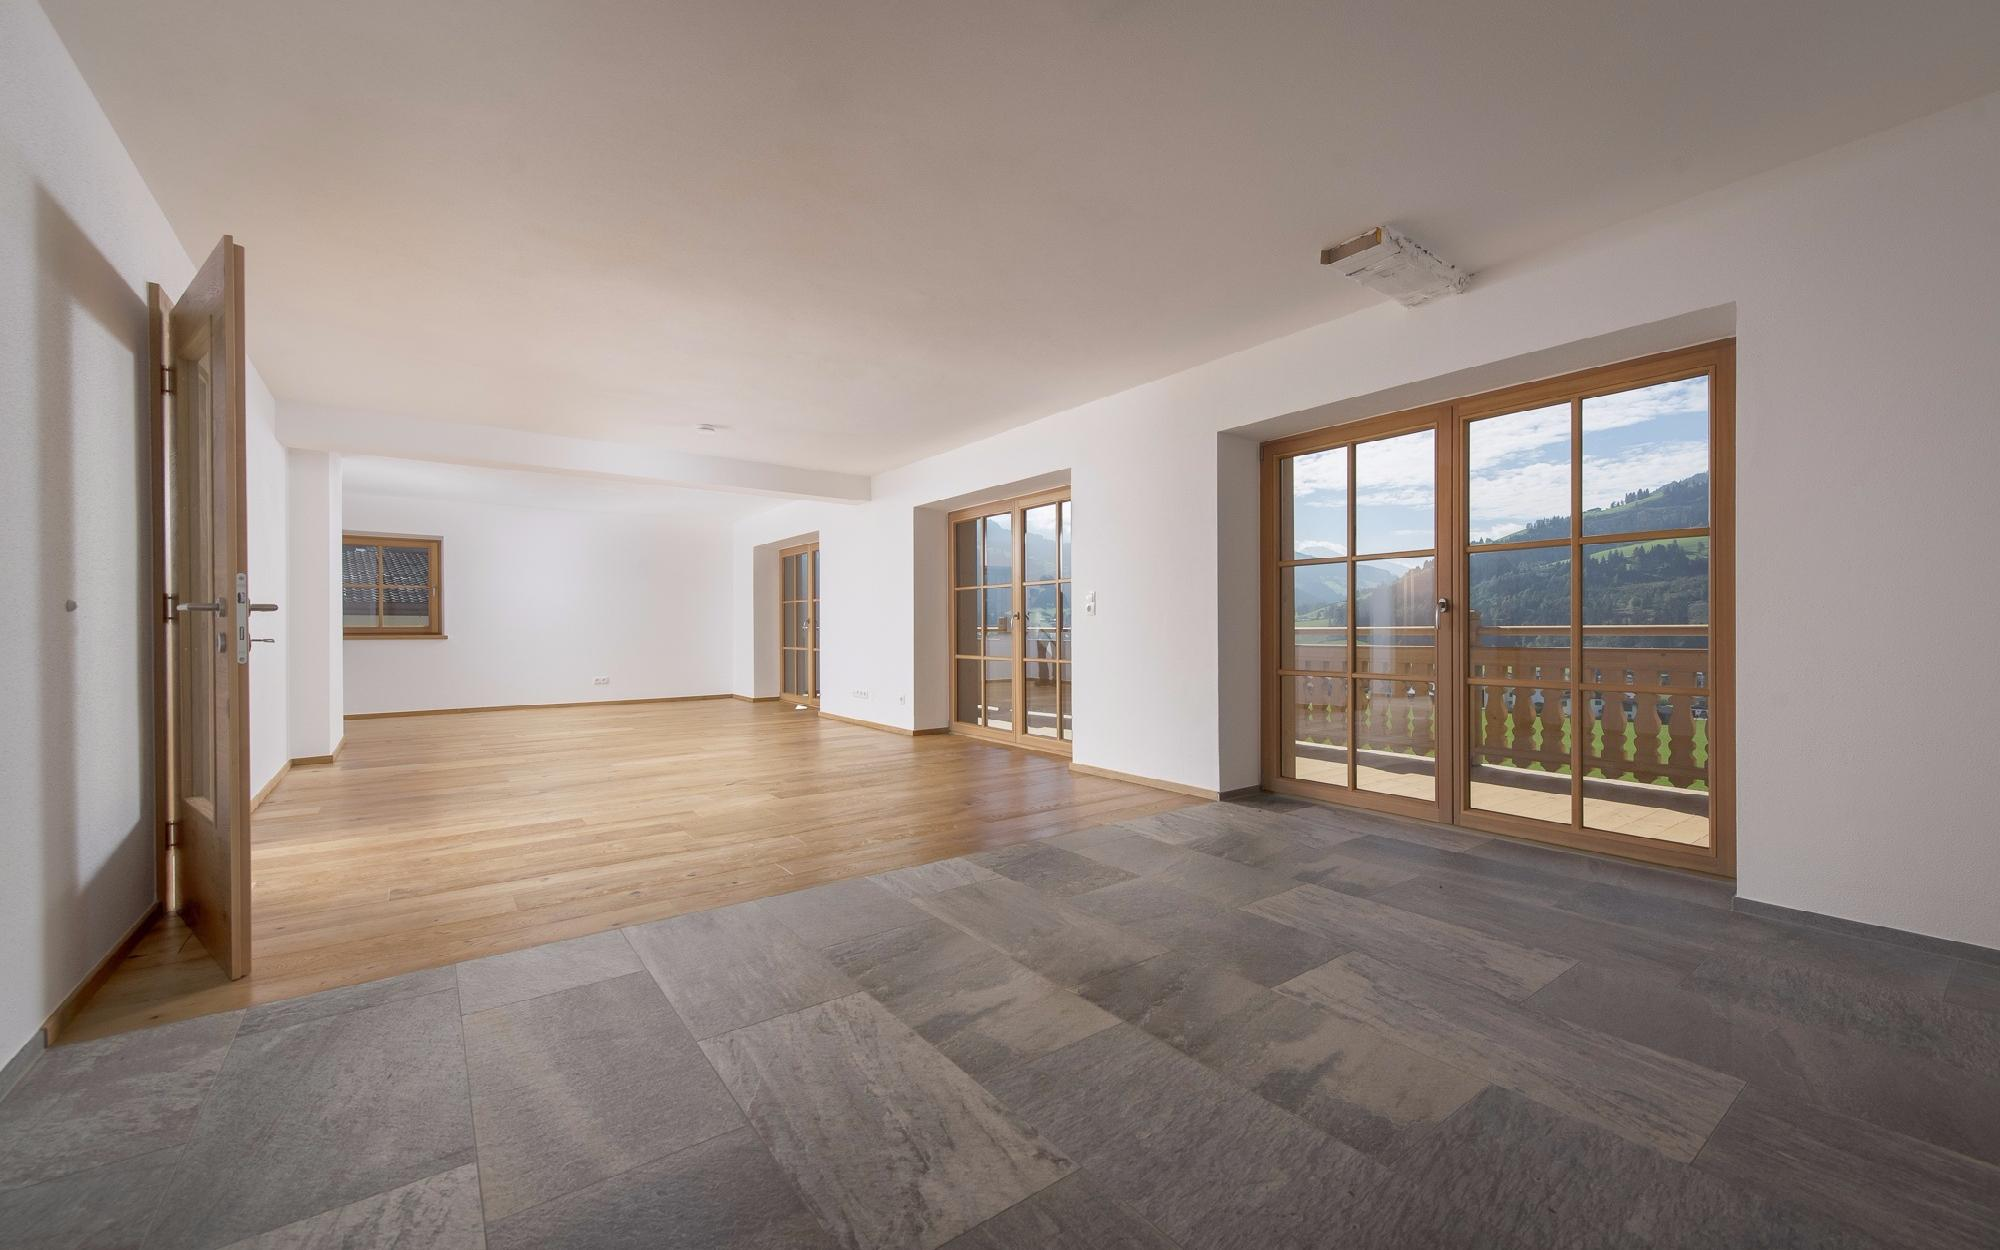 Penthouse & apartment in an unobstructed sunny view in Kirchberg